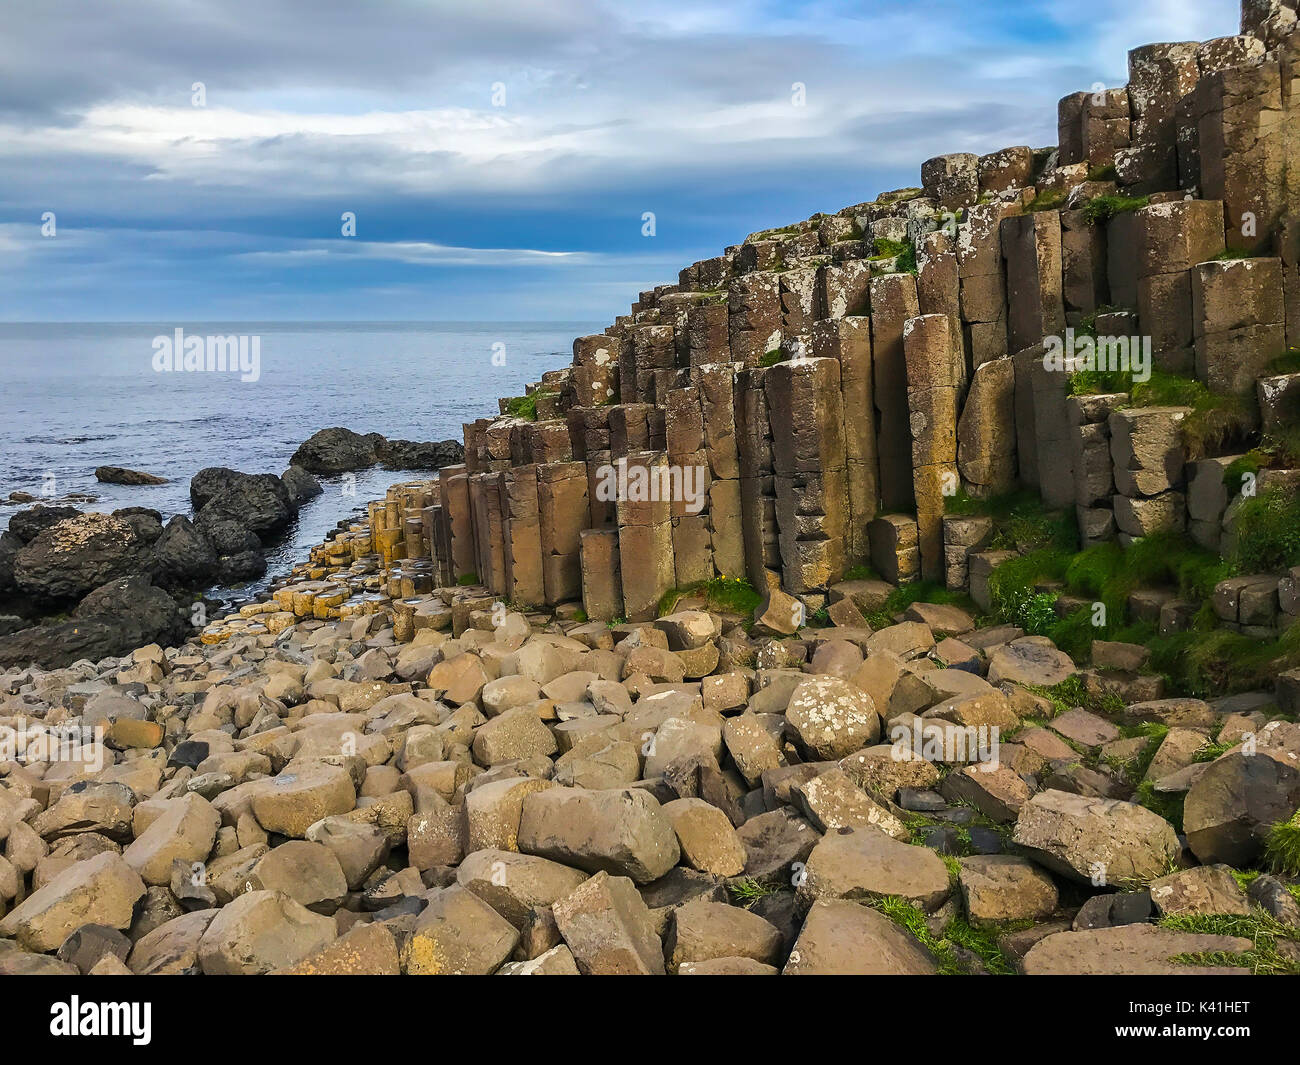 Beautiful scenery with basalt columns sticking out of the ground at Giants Causeway in Northern Ireland in the county of Antrim in the United Kingdom, - Stock Image